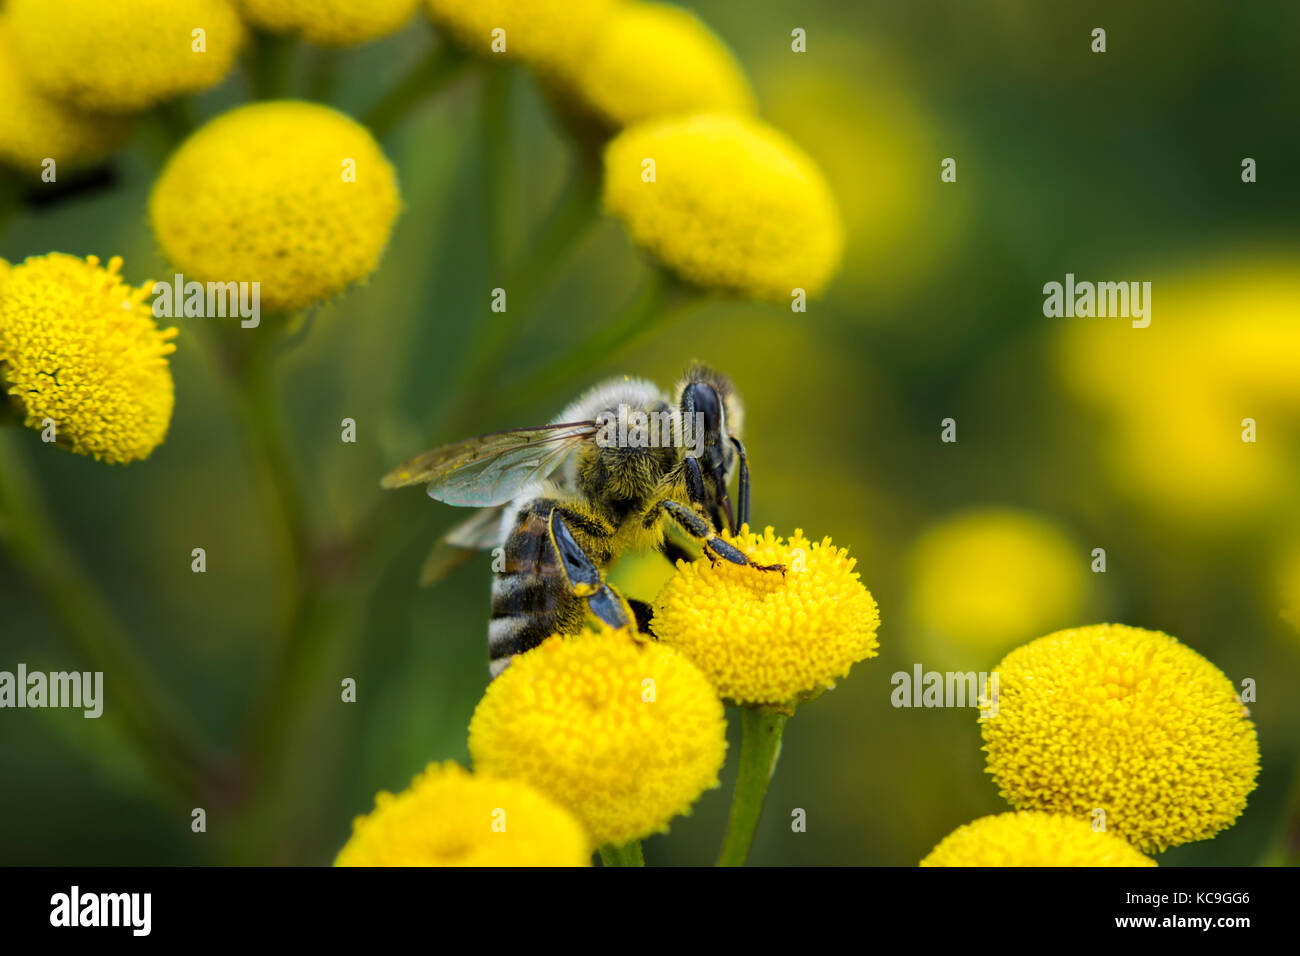 Side Angle View Of European Honey Bee Or Apis Mellifera Gathering Pollen From Yellow Flower - Stock Image